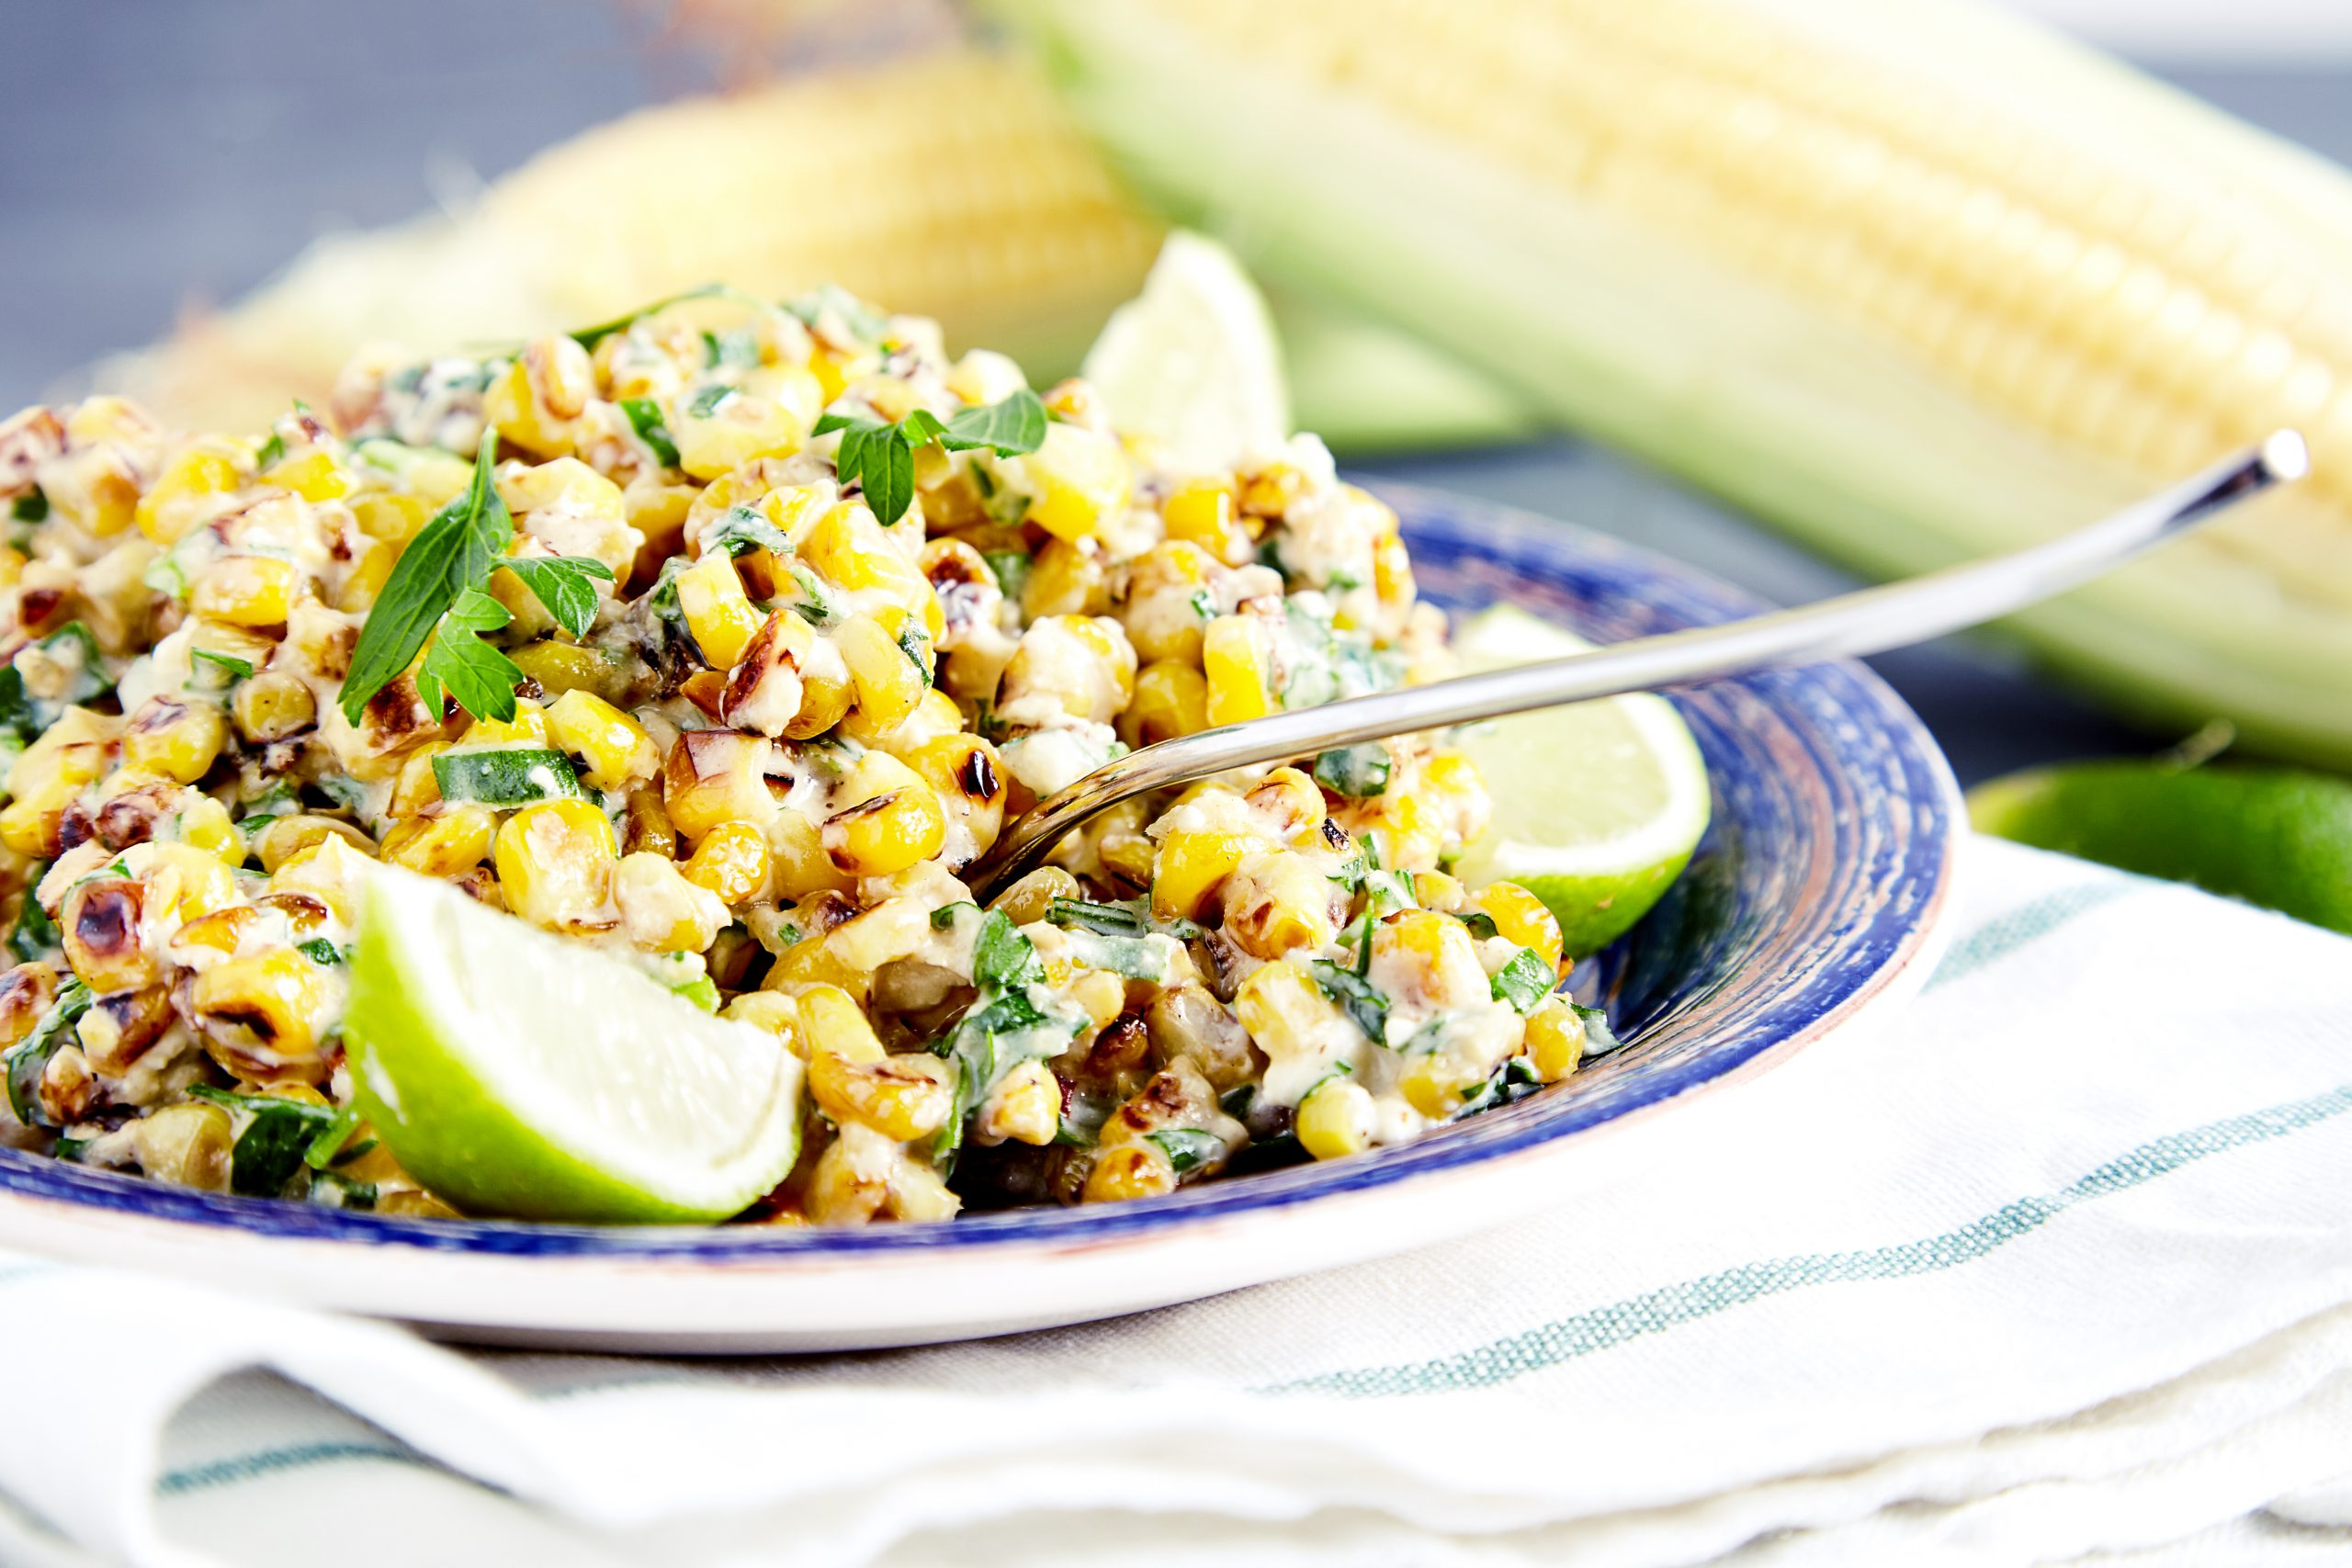 You can serve it either warm or cold mexican corn salad